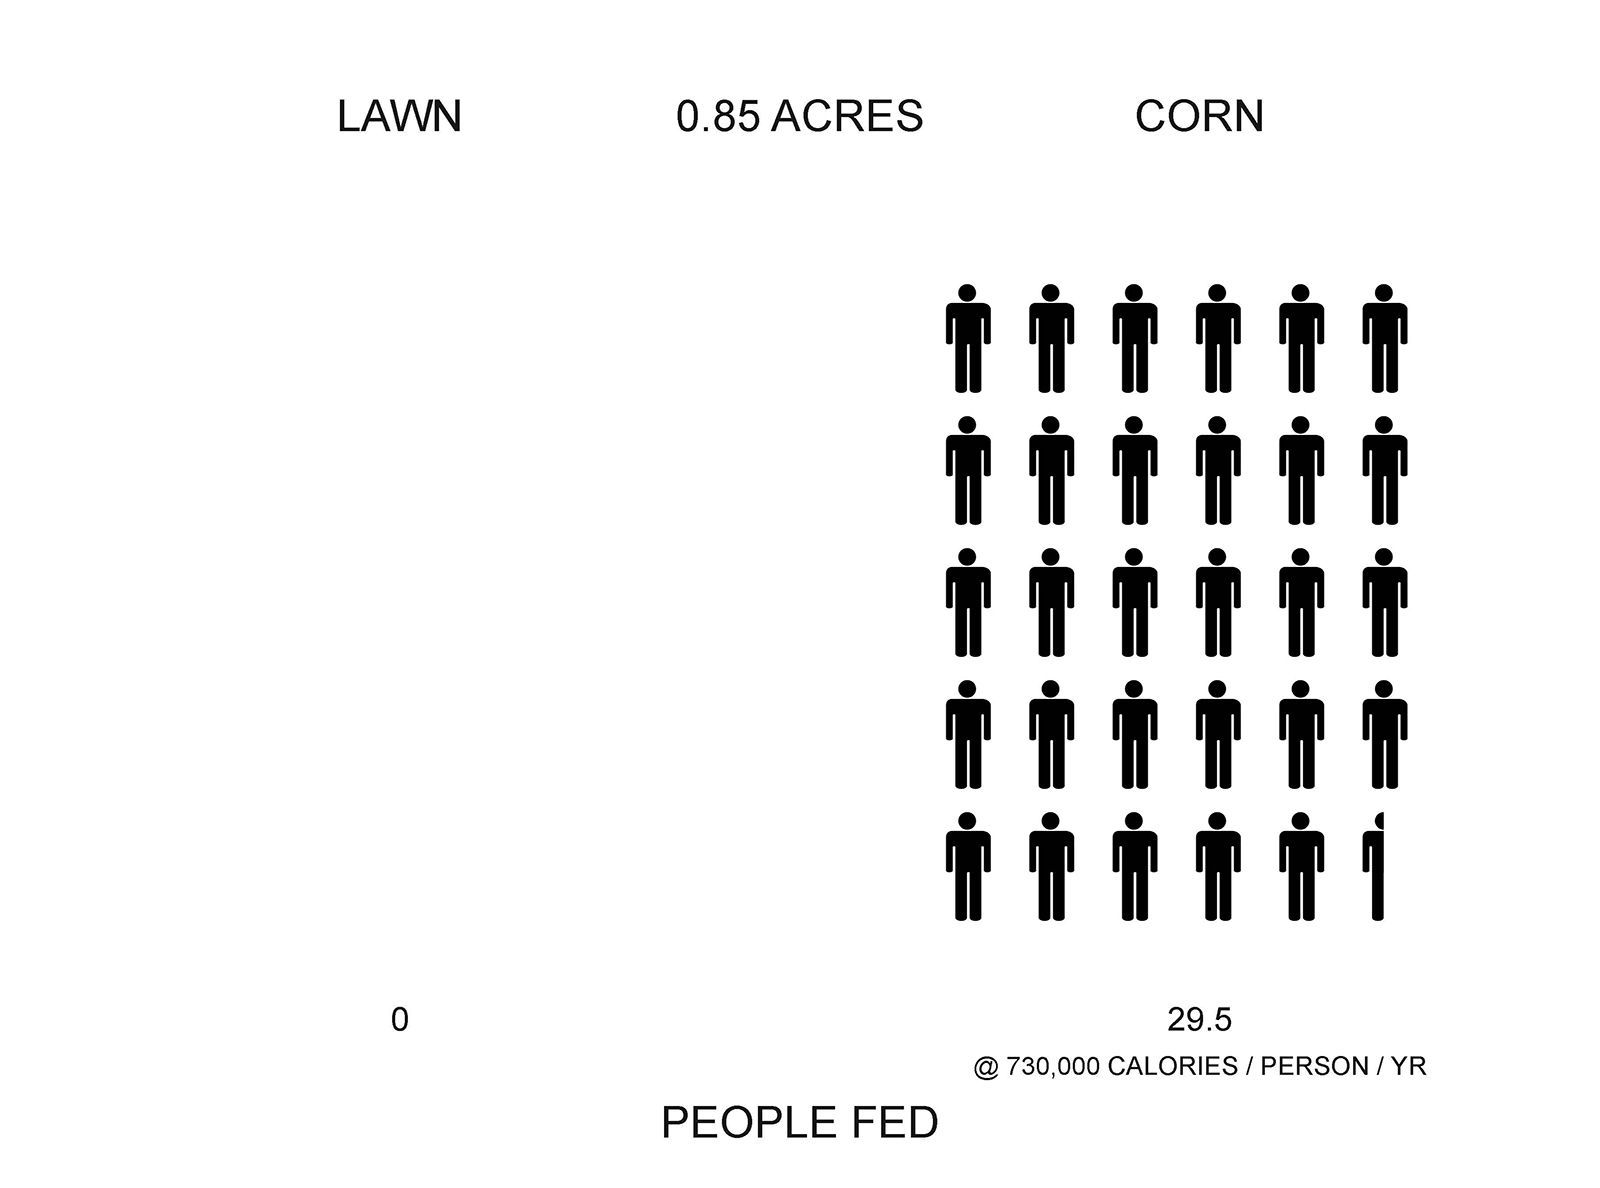 People fed by each